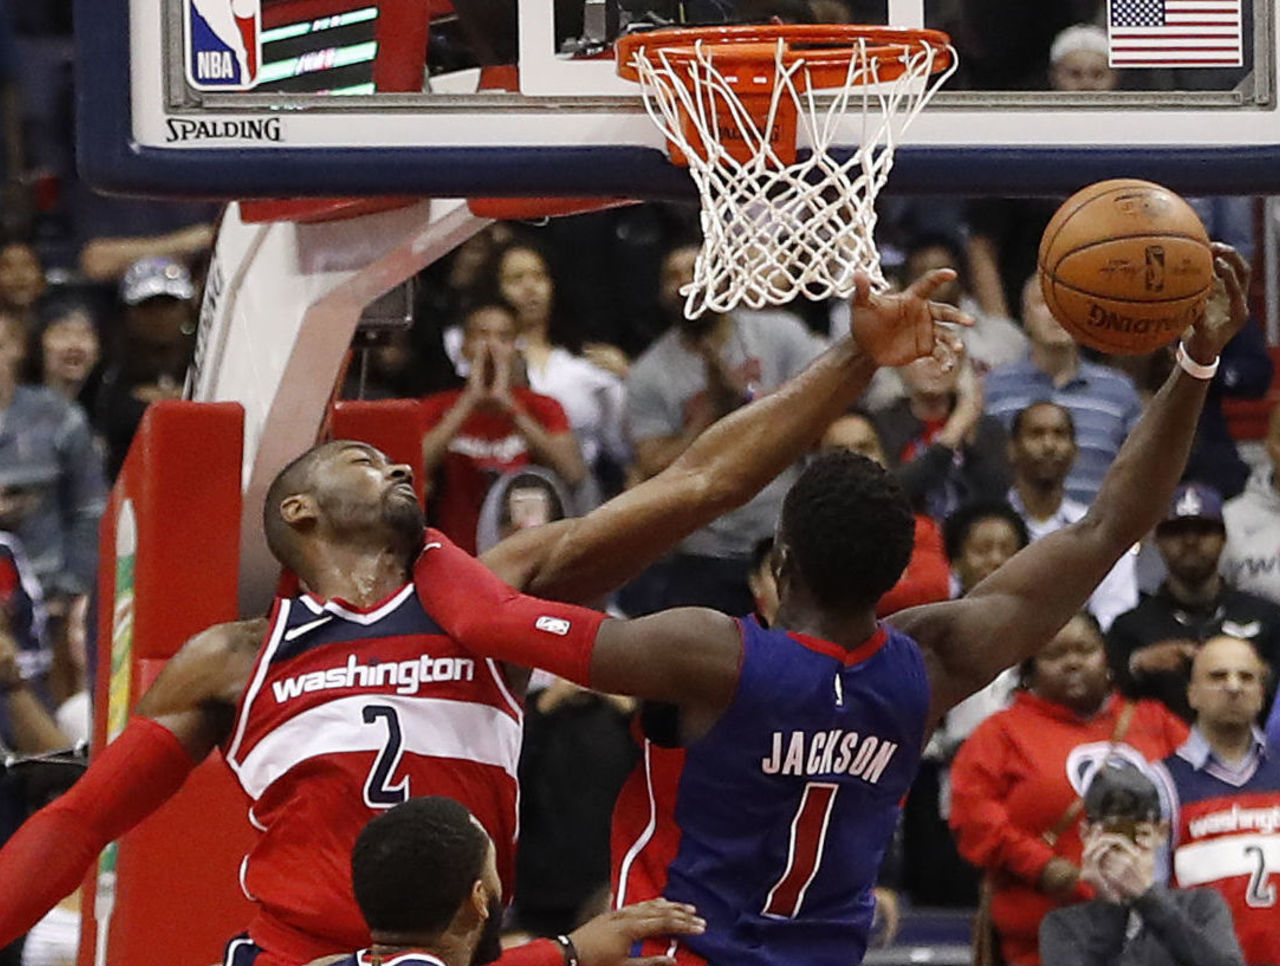 Cropped_2017-10-21t020528z_568175568_nocid_rtrmadp_3_nba-detroit-pistons-at-washington-wizards